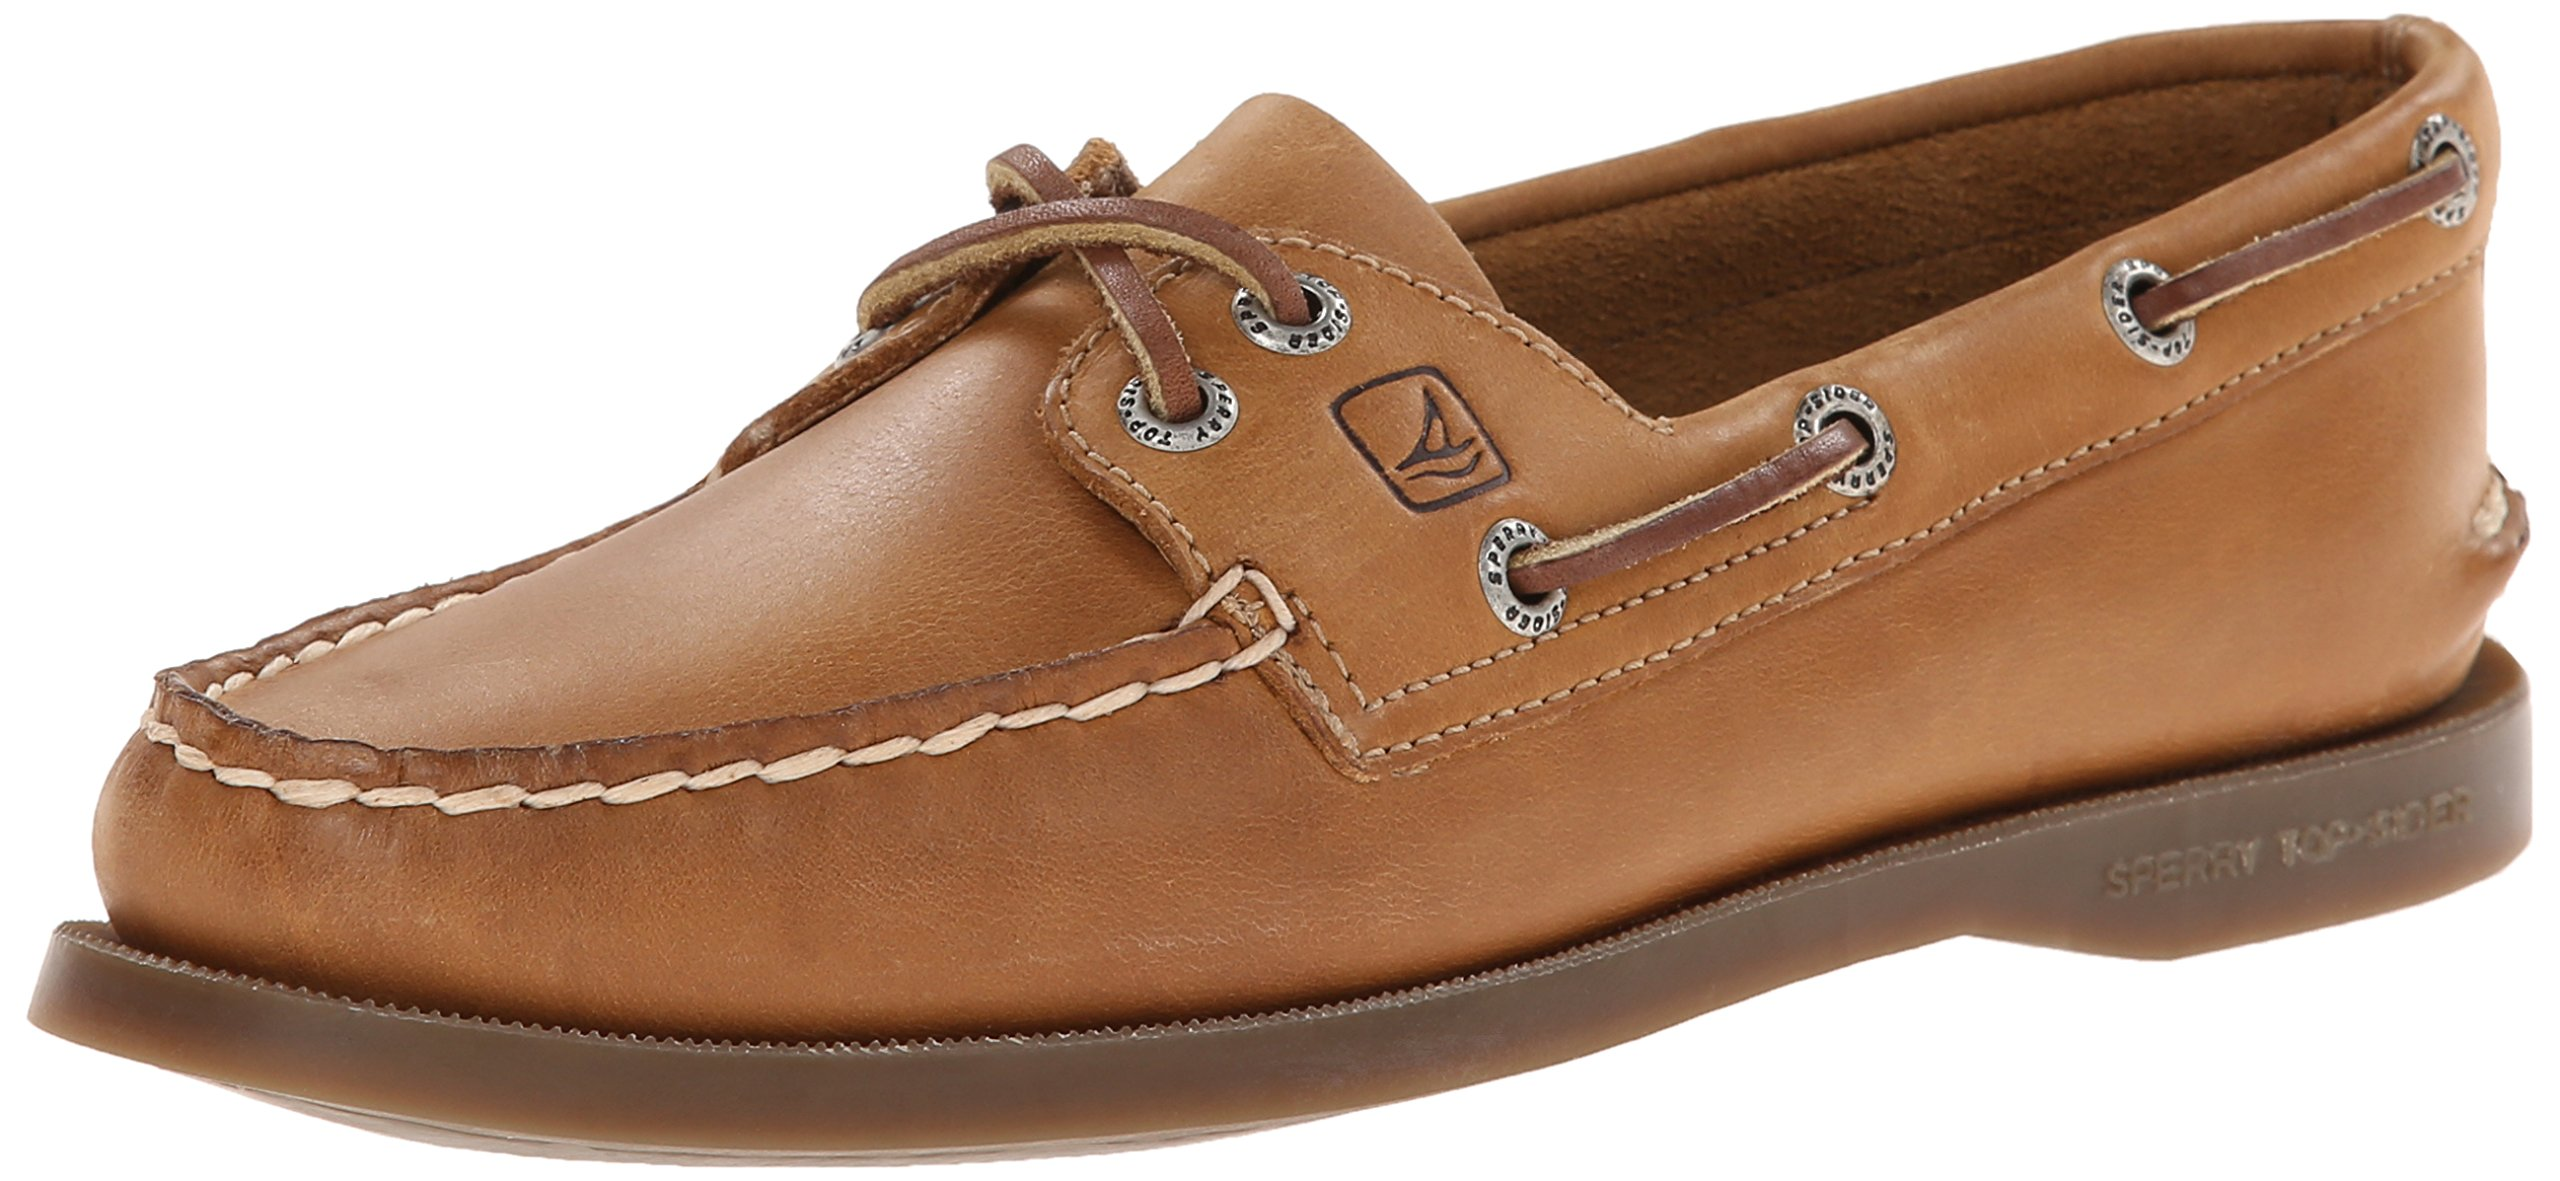 Sperry Top Sider Sahara Womens 8 5 Leather Boat Shoes 9155240 Nz